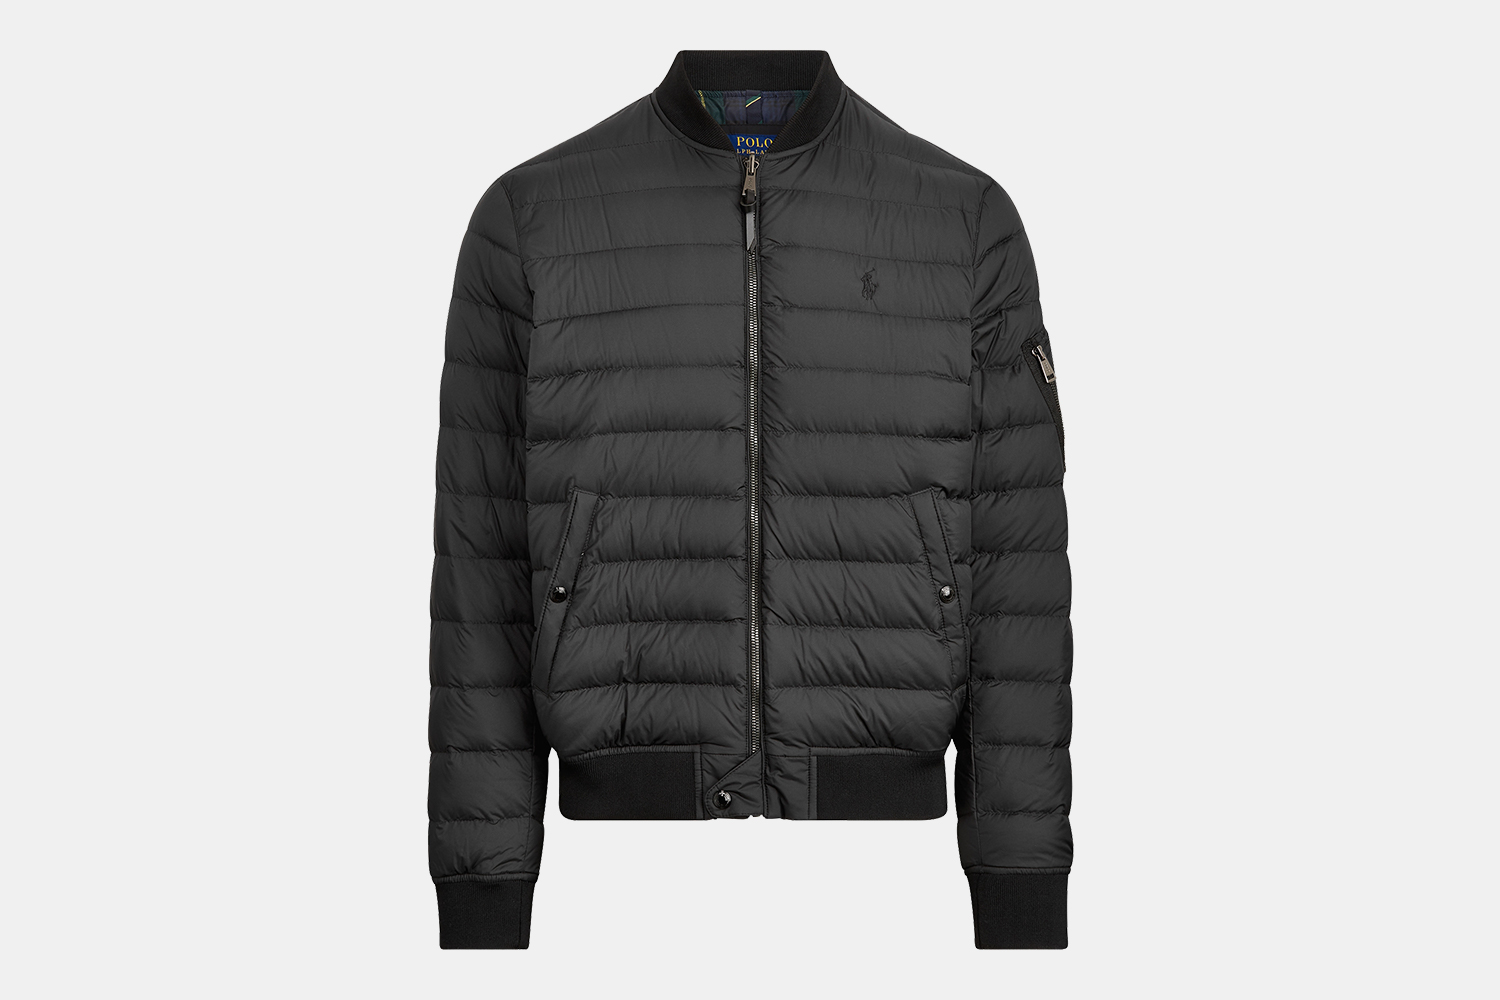 Ralph Lauren Men's Packable Down Bomber Jacket